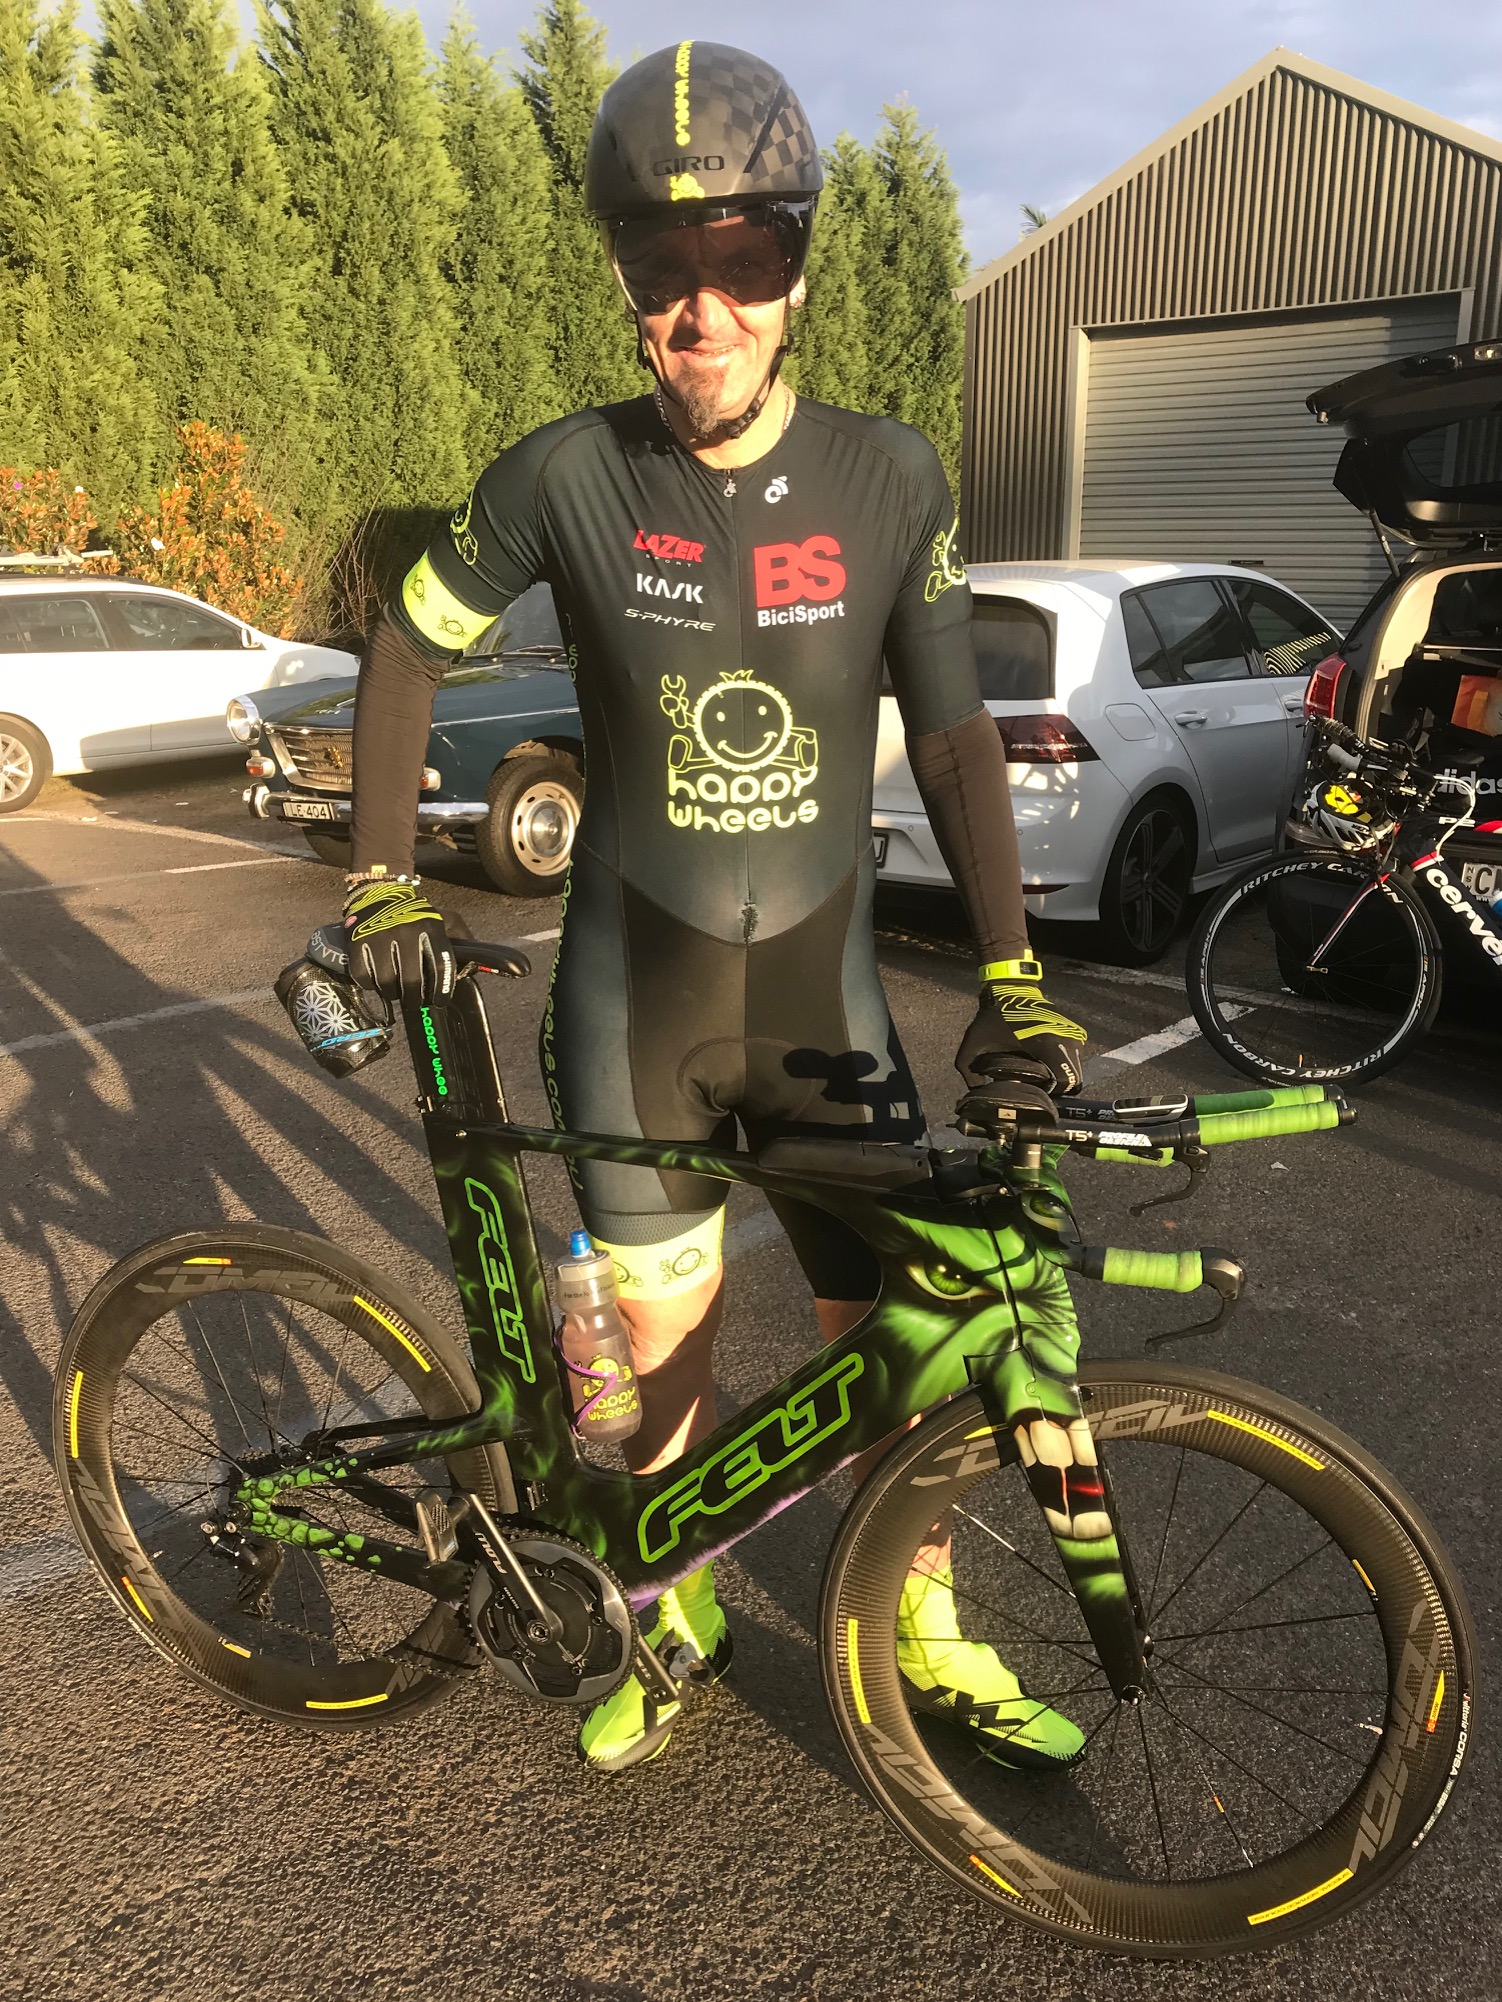 BiciSport TTT Training @ Terrey Hills @ 26 May - Stewart Campbell with the Green Beast